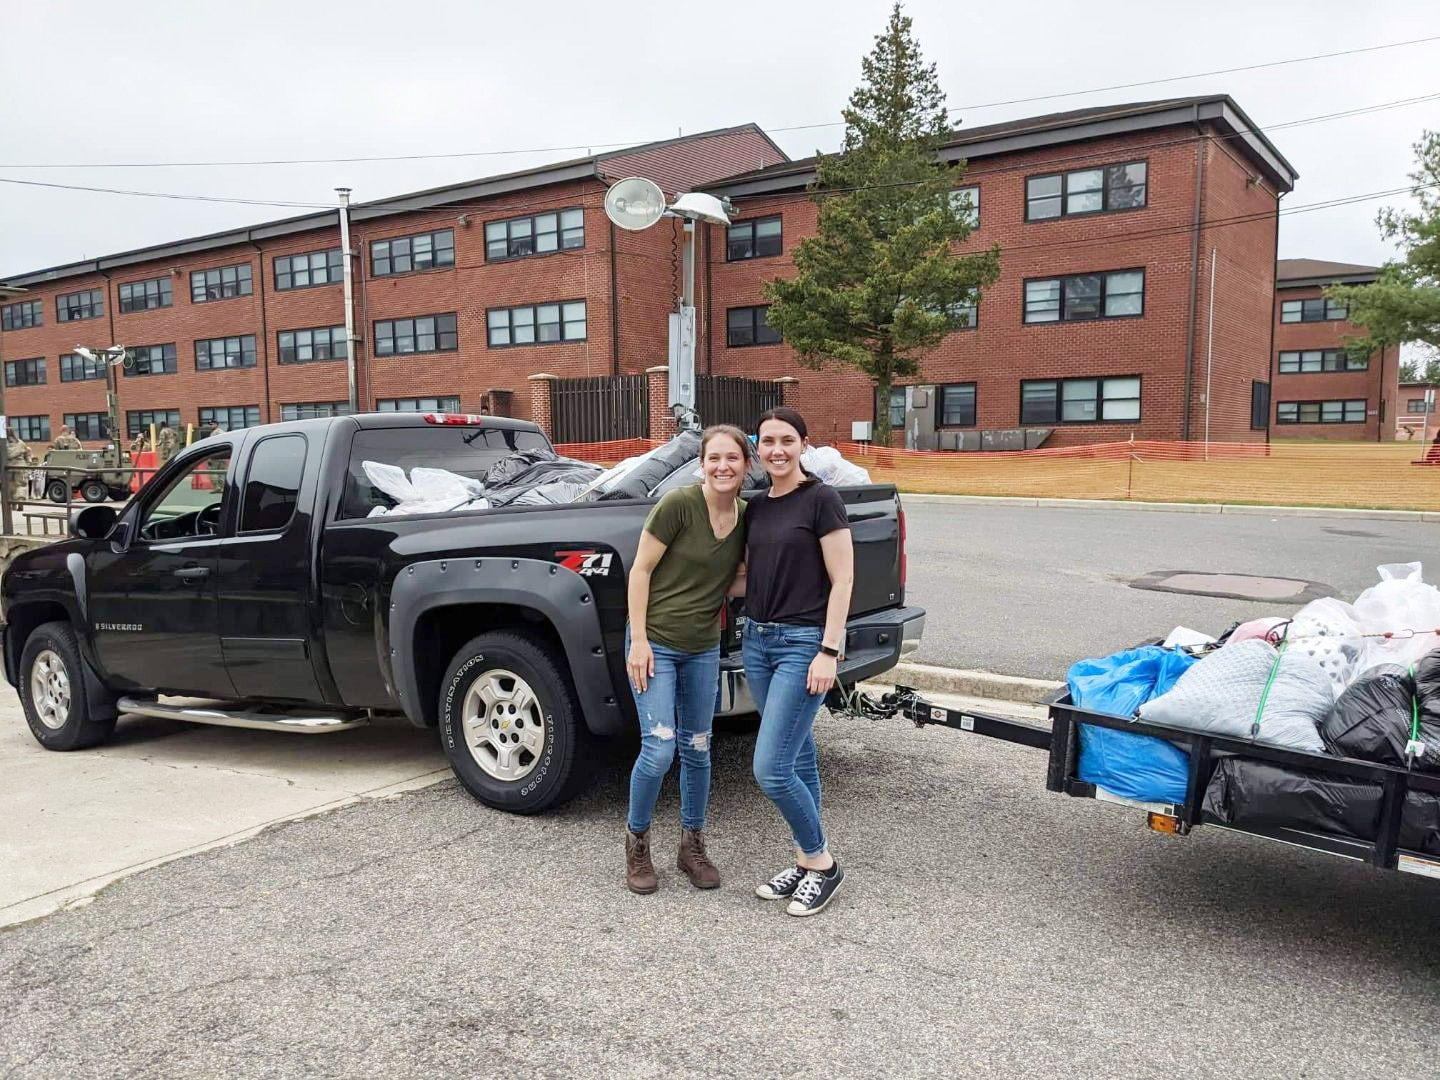 Senior Airman Katlyn Legerstee, left, and Tech. Sgt. Cassandra Dowling, right, both of the 157th Air Refueling Wing, stand in front of the pickup truck and trailer they loaded with clothing donated for vulnerable Afghans temporarily living at Joint Base McGuire-Dix-Lakehurst, Sept. 17, 2021.